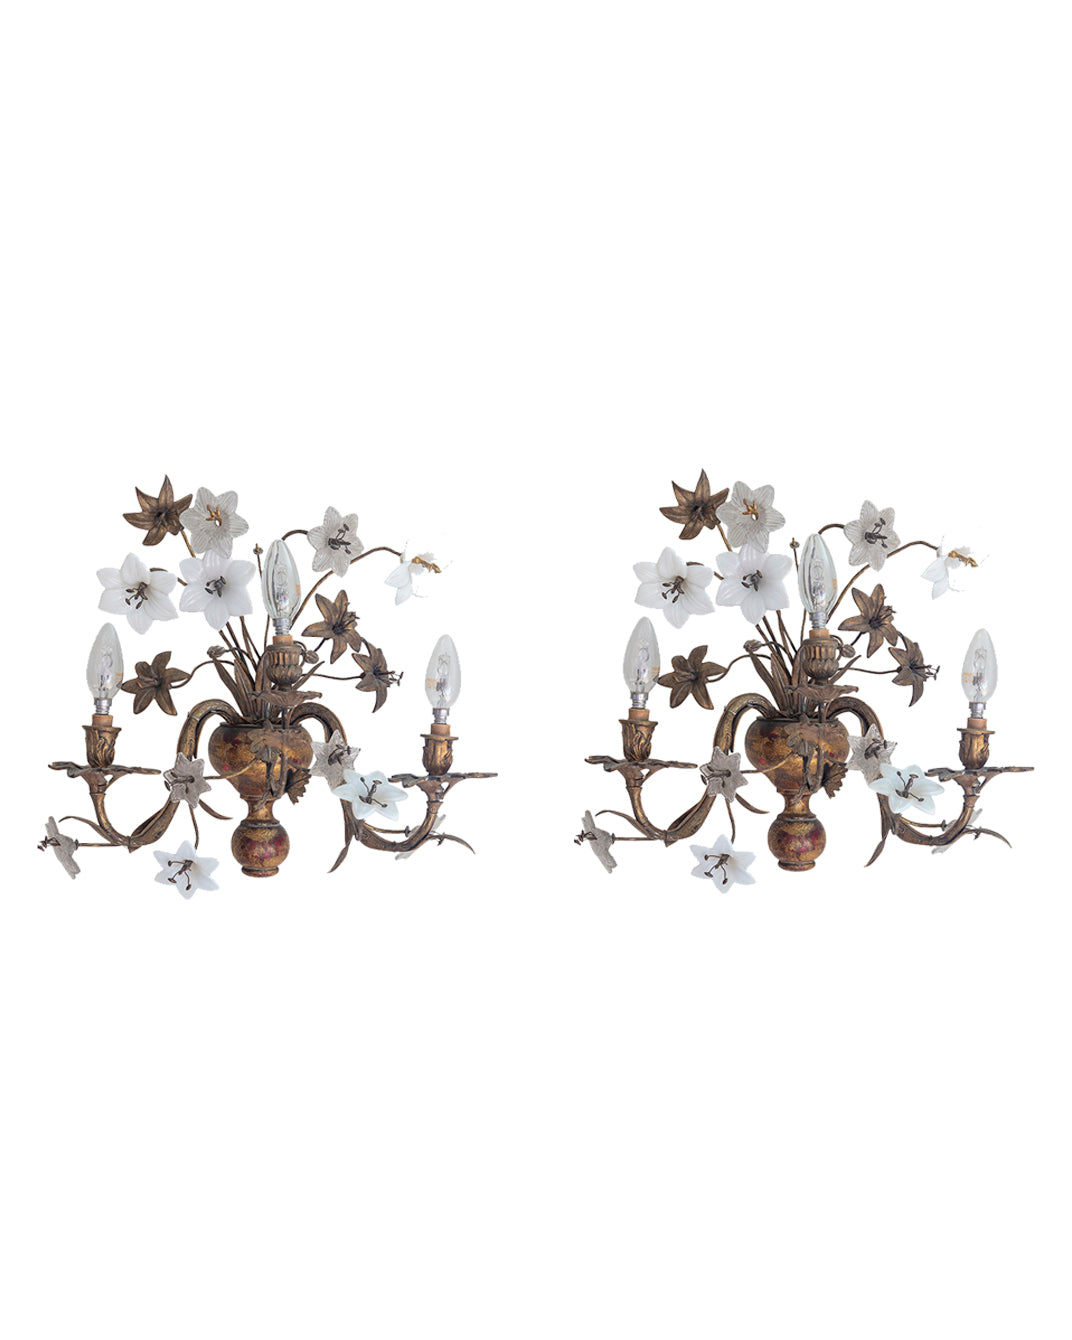 Pair of floral sconce. France. Beginning of the XIXth century